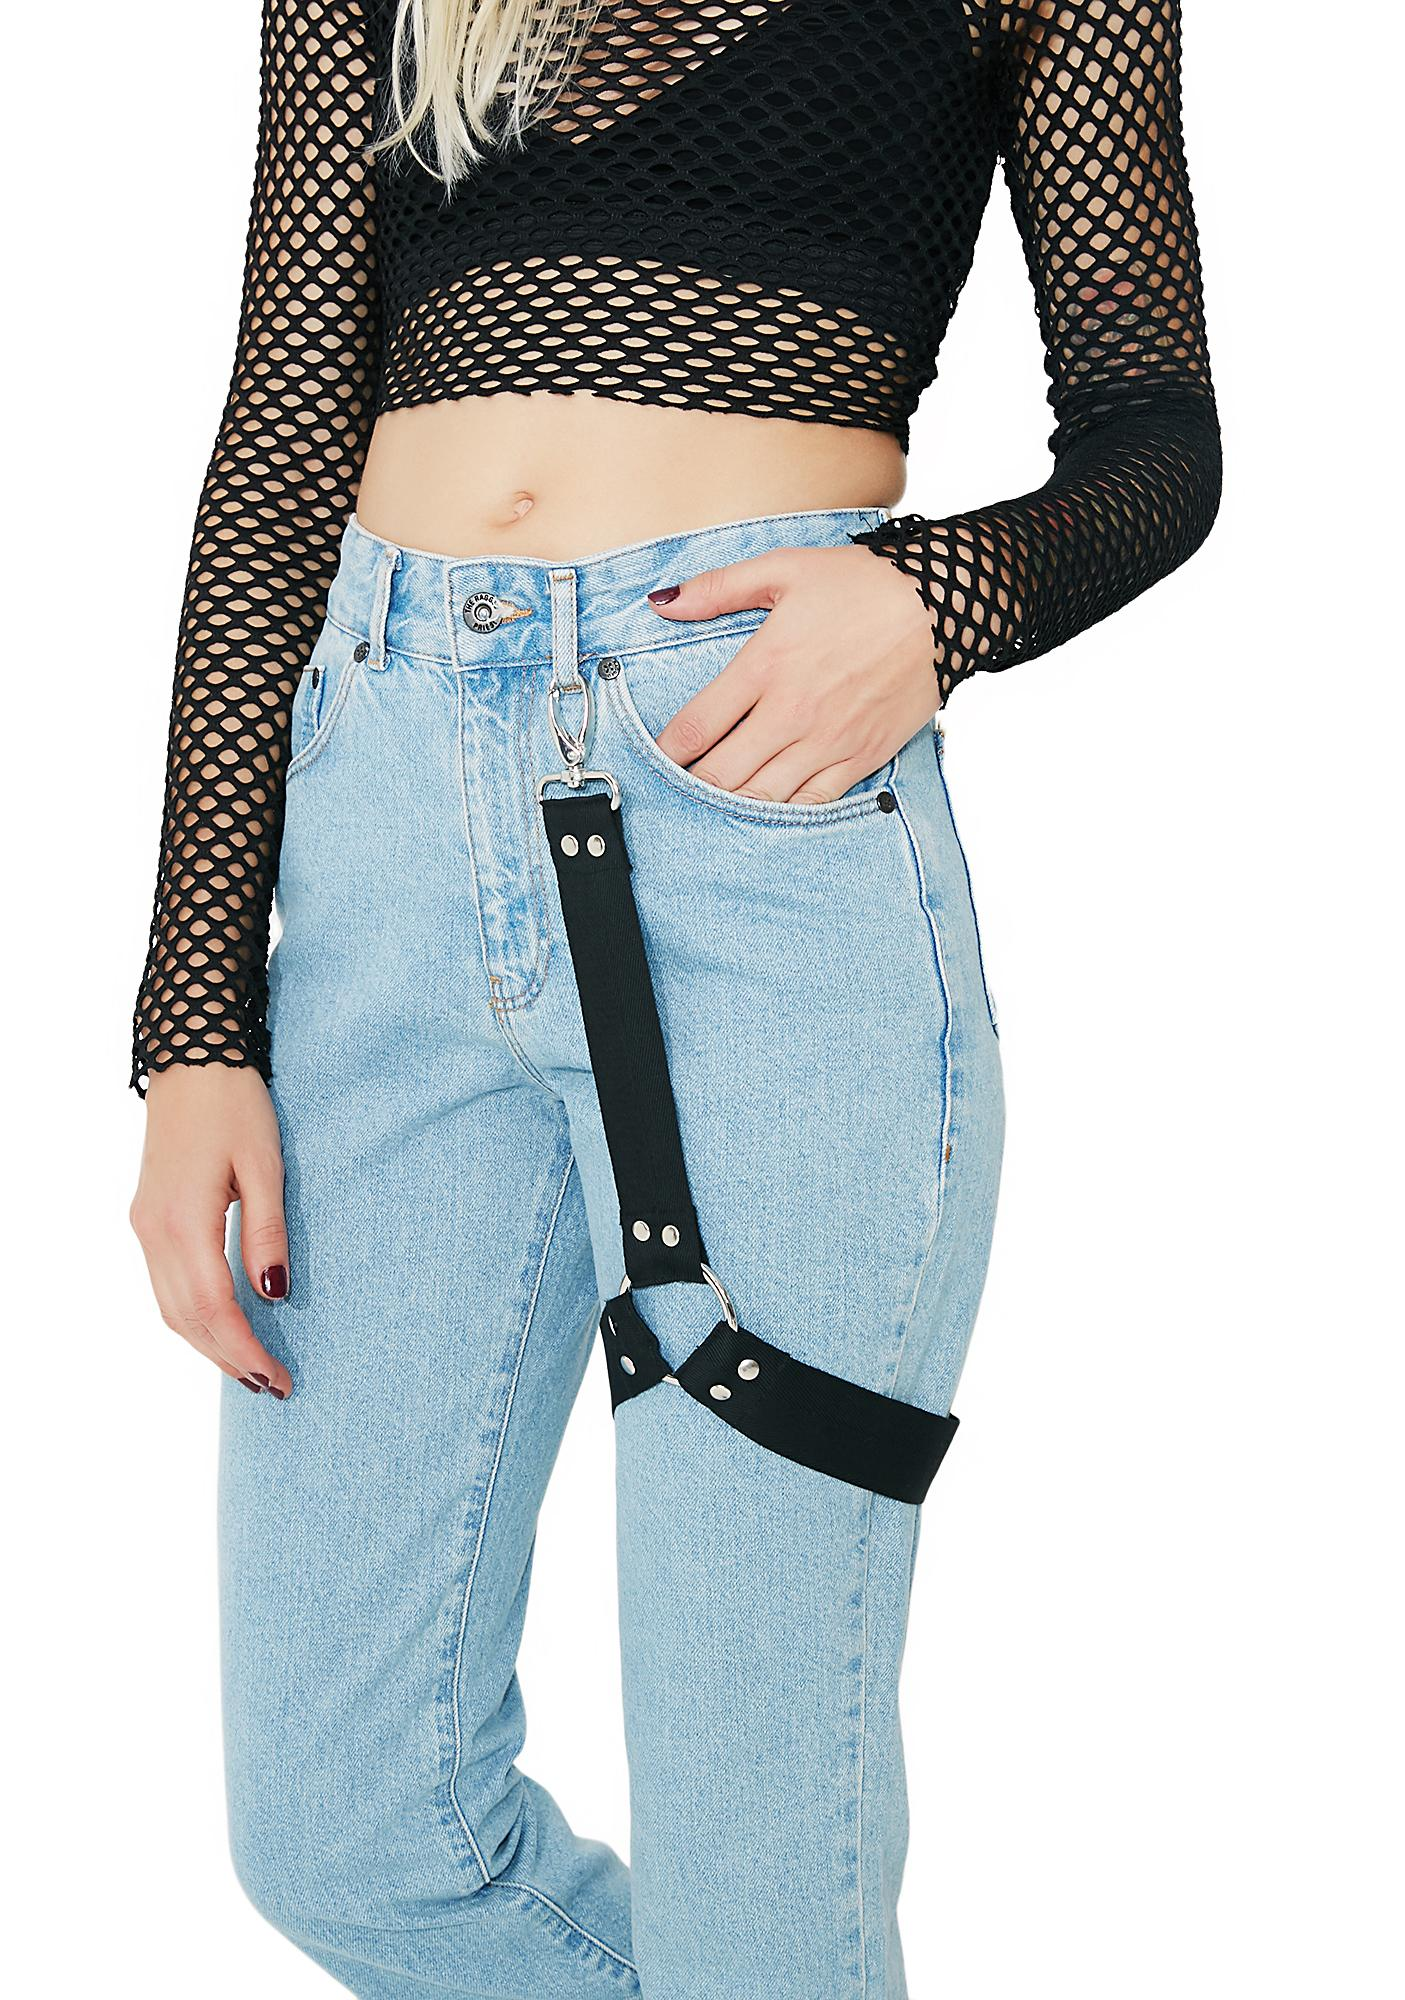 The Ragged Priest Harness Jeans